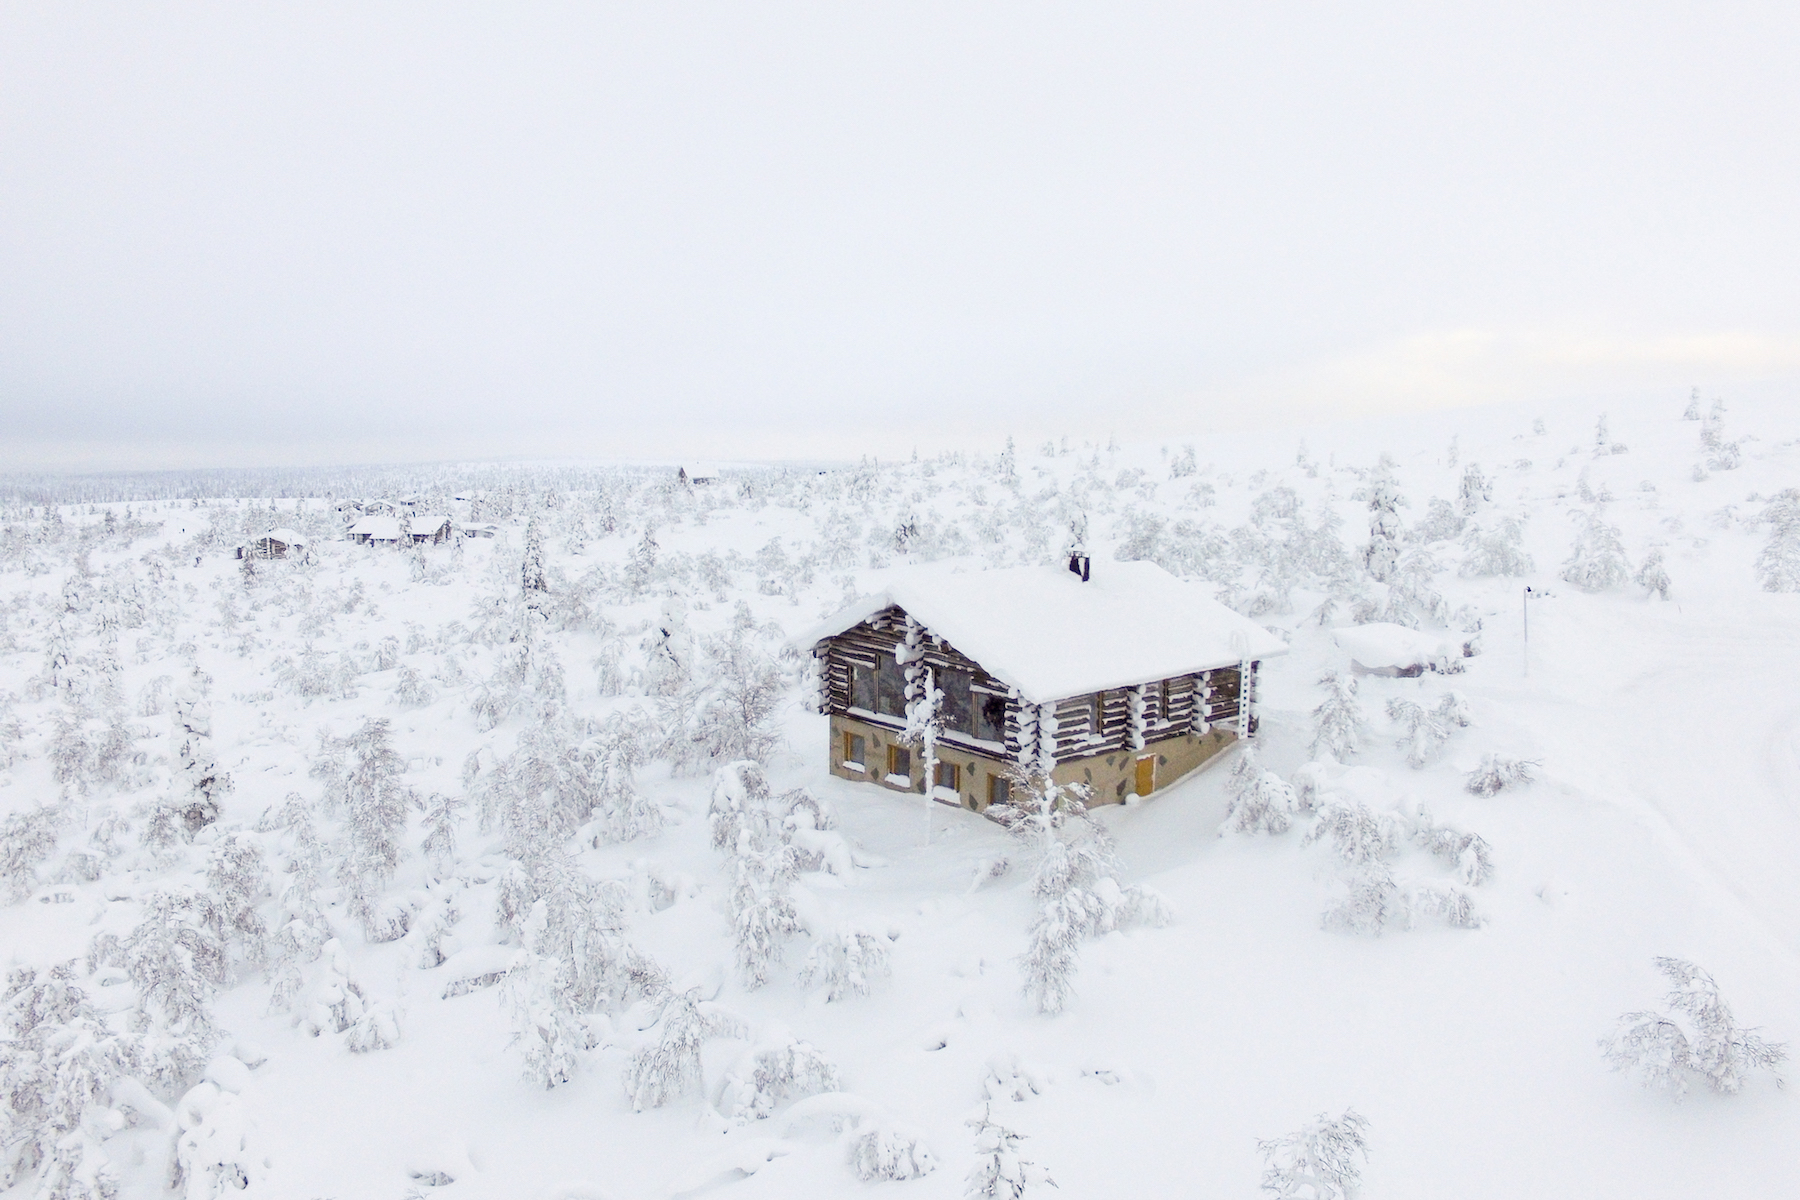 Single Family Home for Sale at Extraordinary Ski Chalet in Lapland Uuvana 1 Other Cities In Finland, Cities In Finland, 99830 Finland